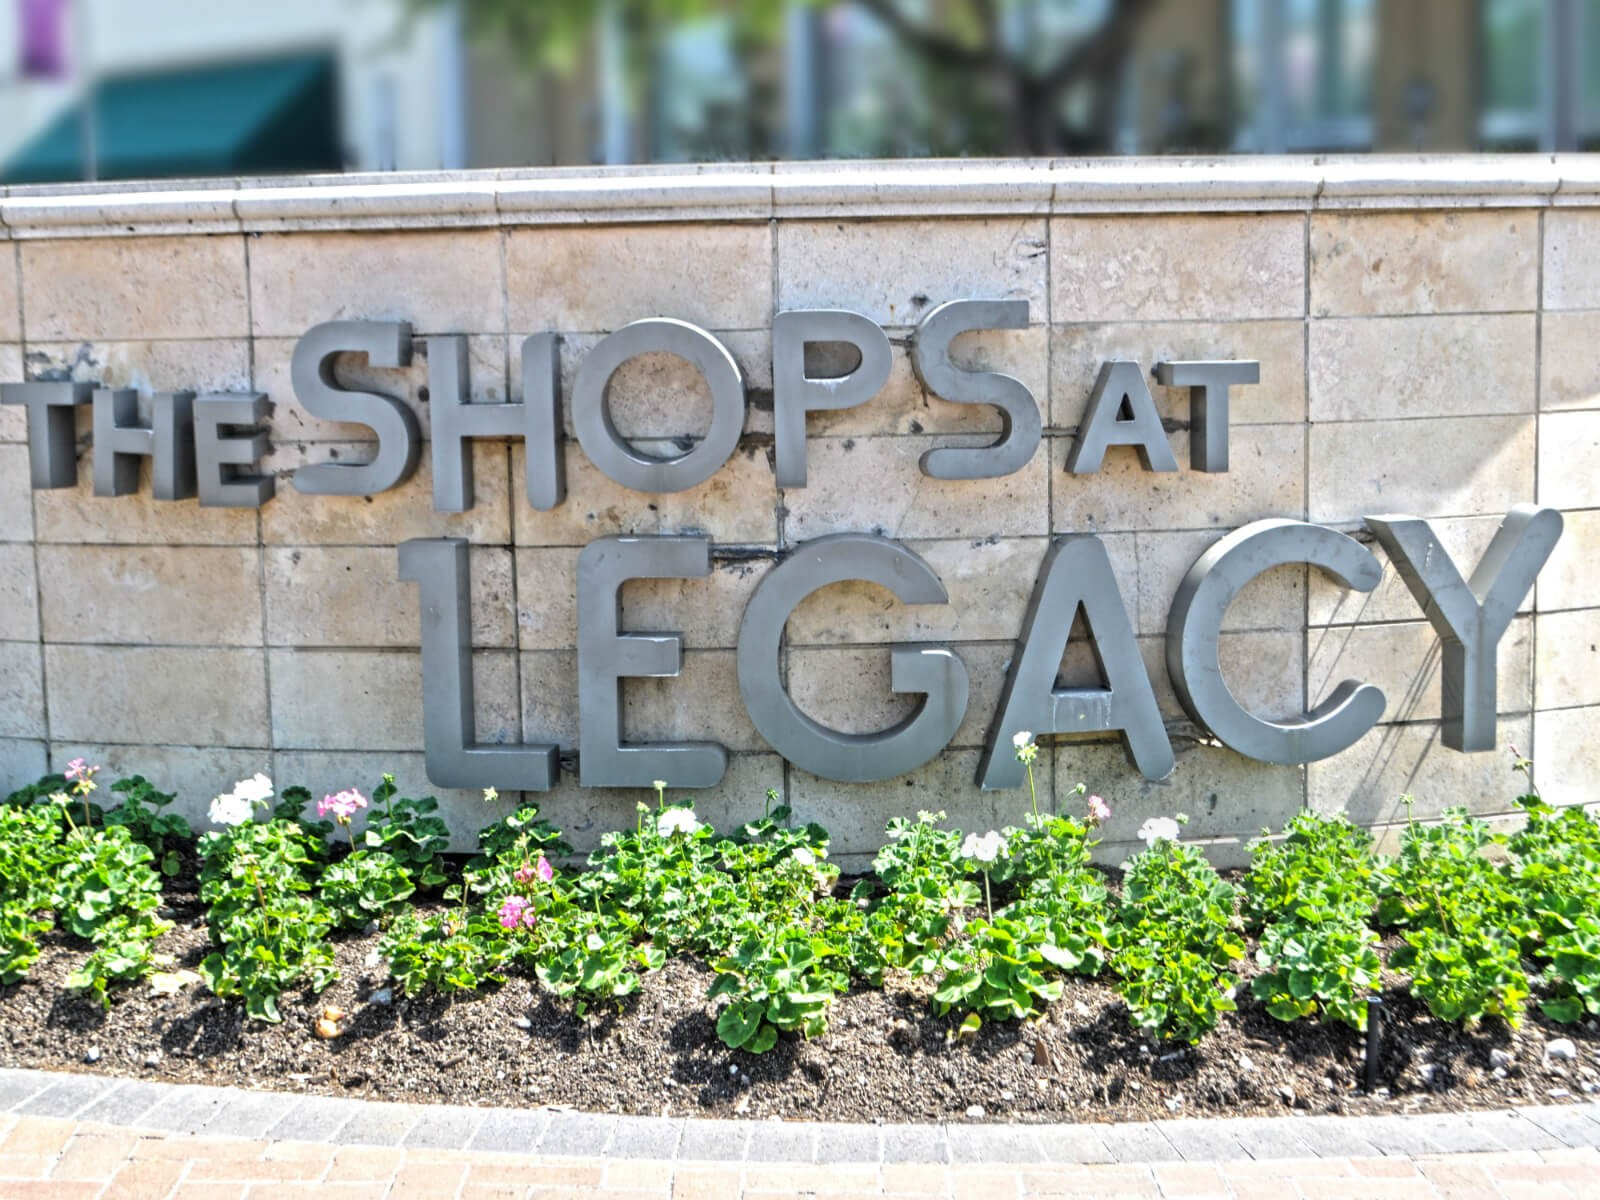 Image of Shops at Legacy